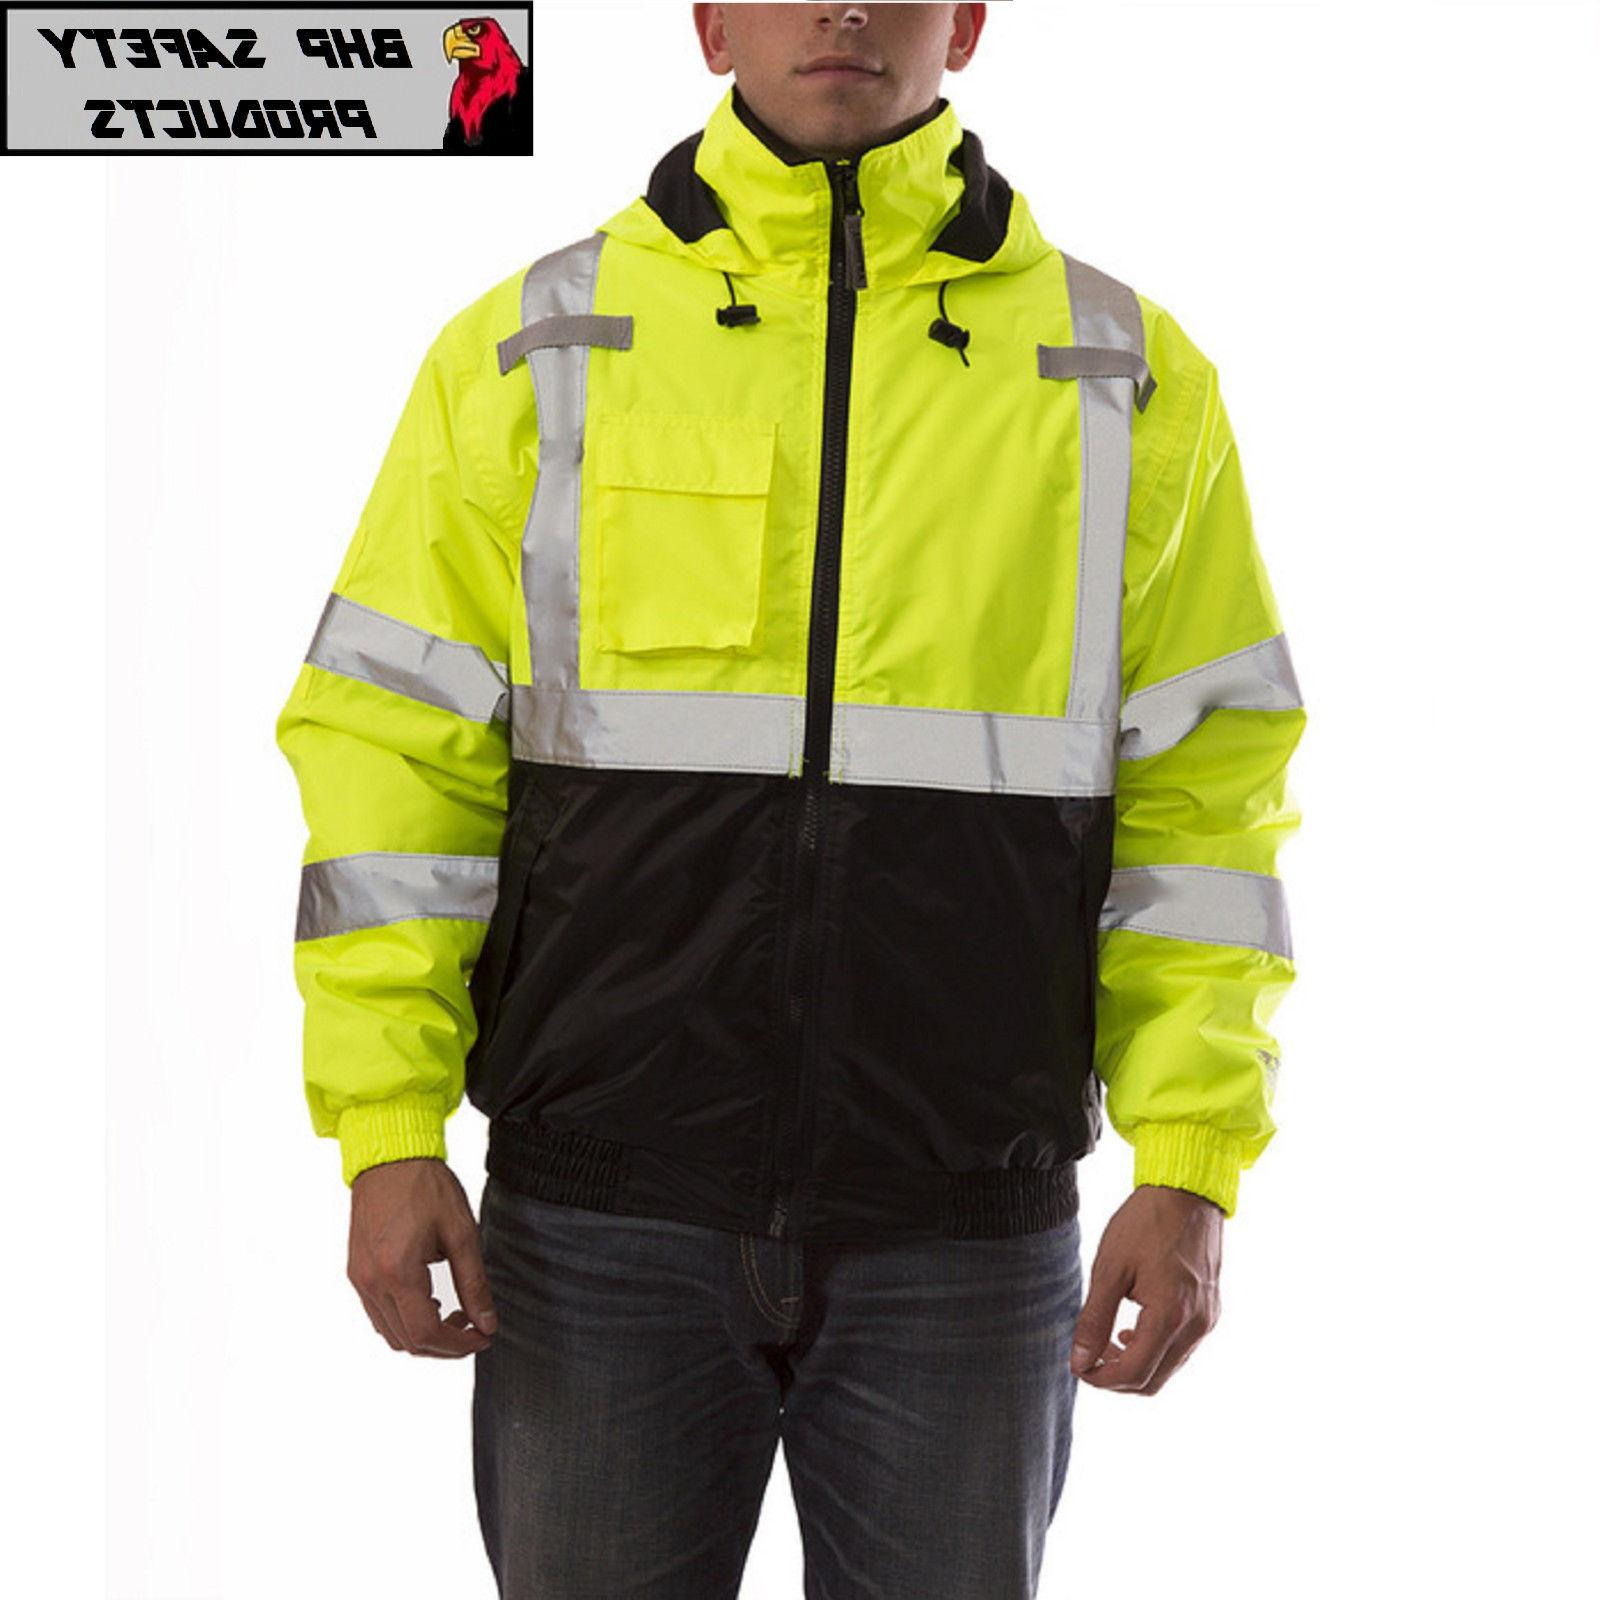 Hi-Vis Insulated Safety Reflective Jacket ROAD WORK